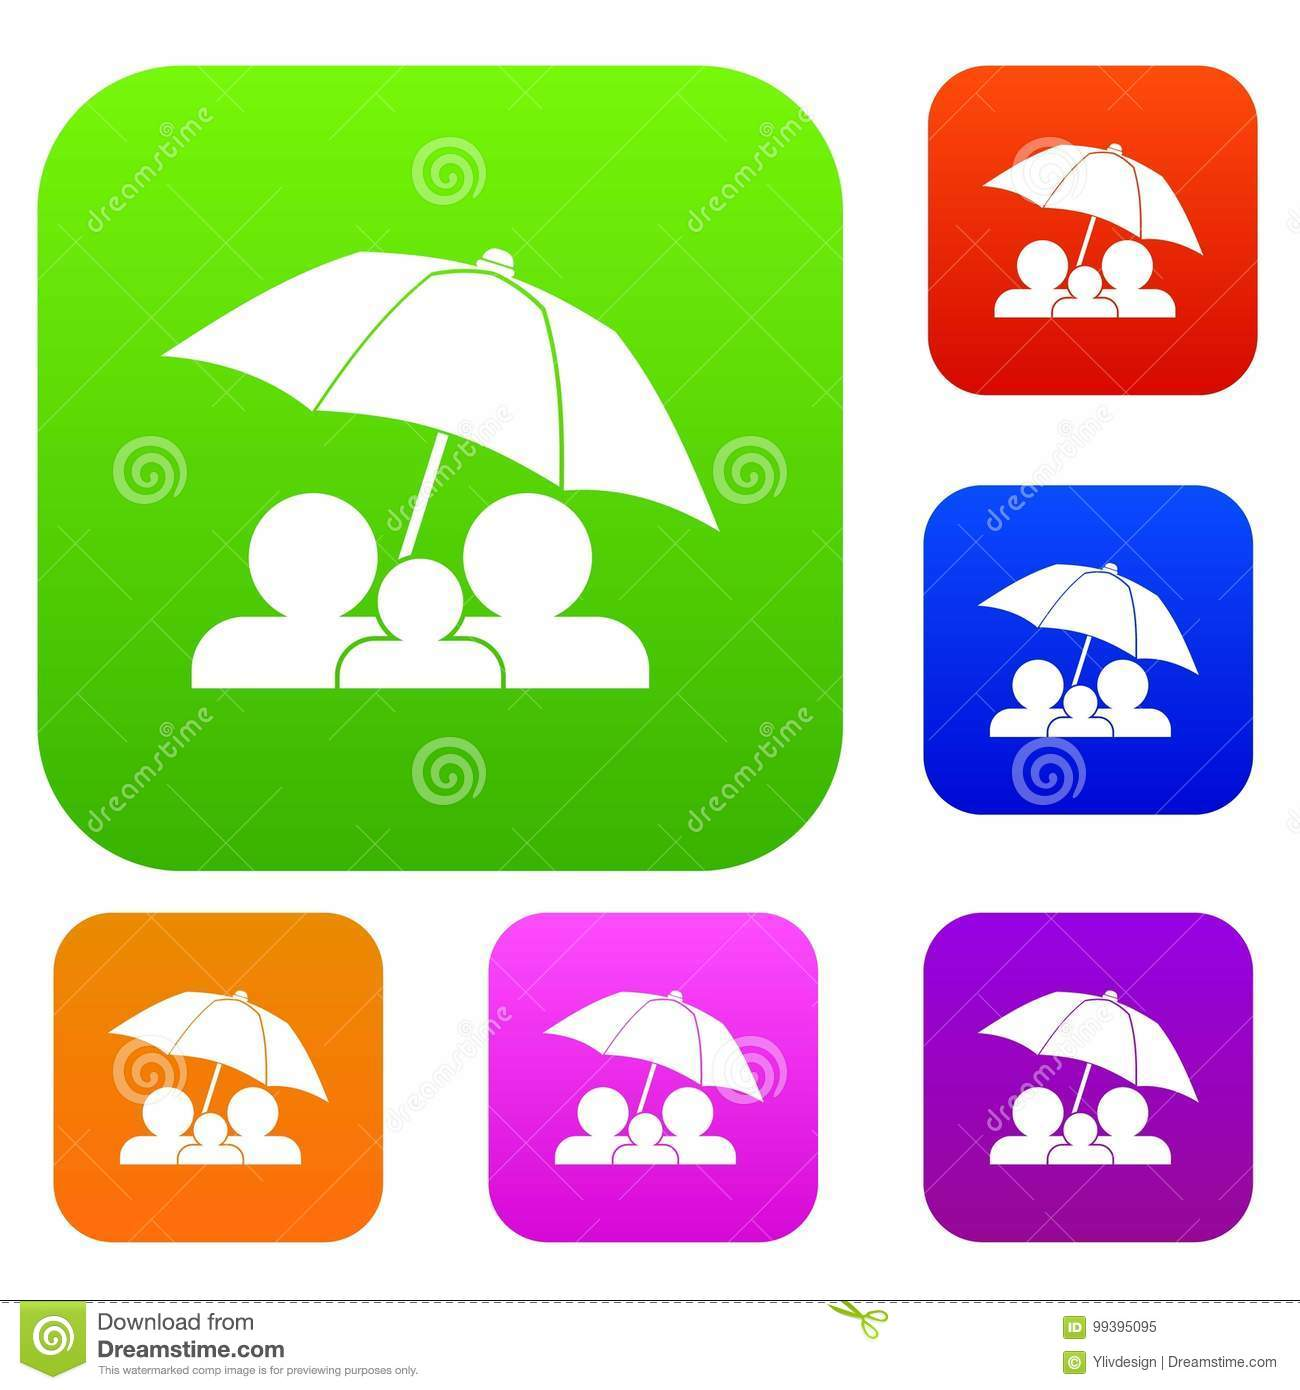 Family Under Umbrella Set Collection Stock Vector - Illustration of ...